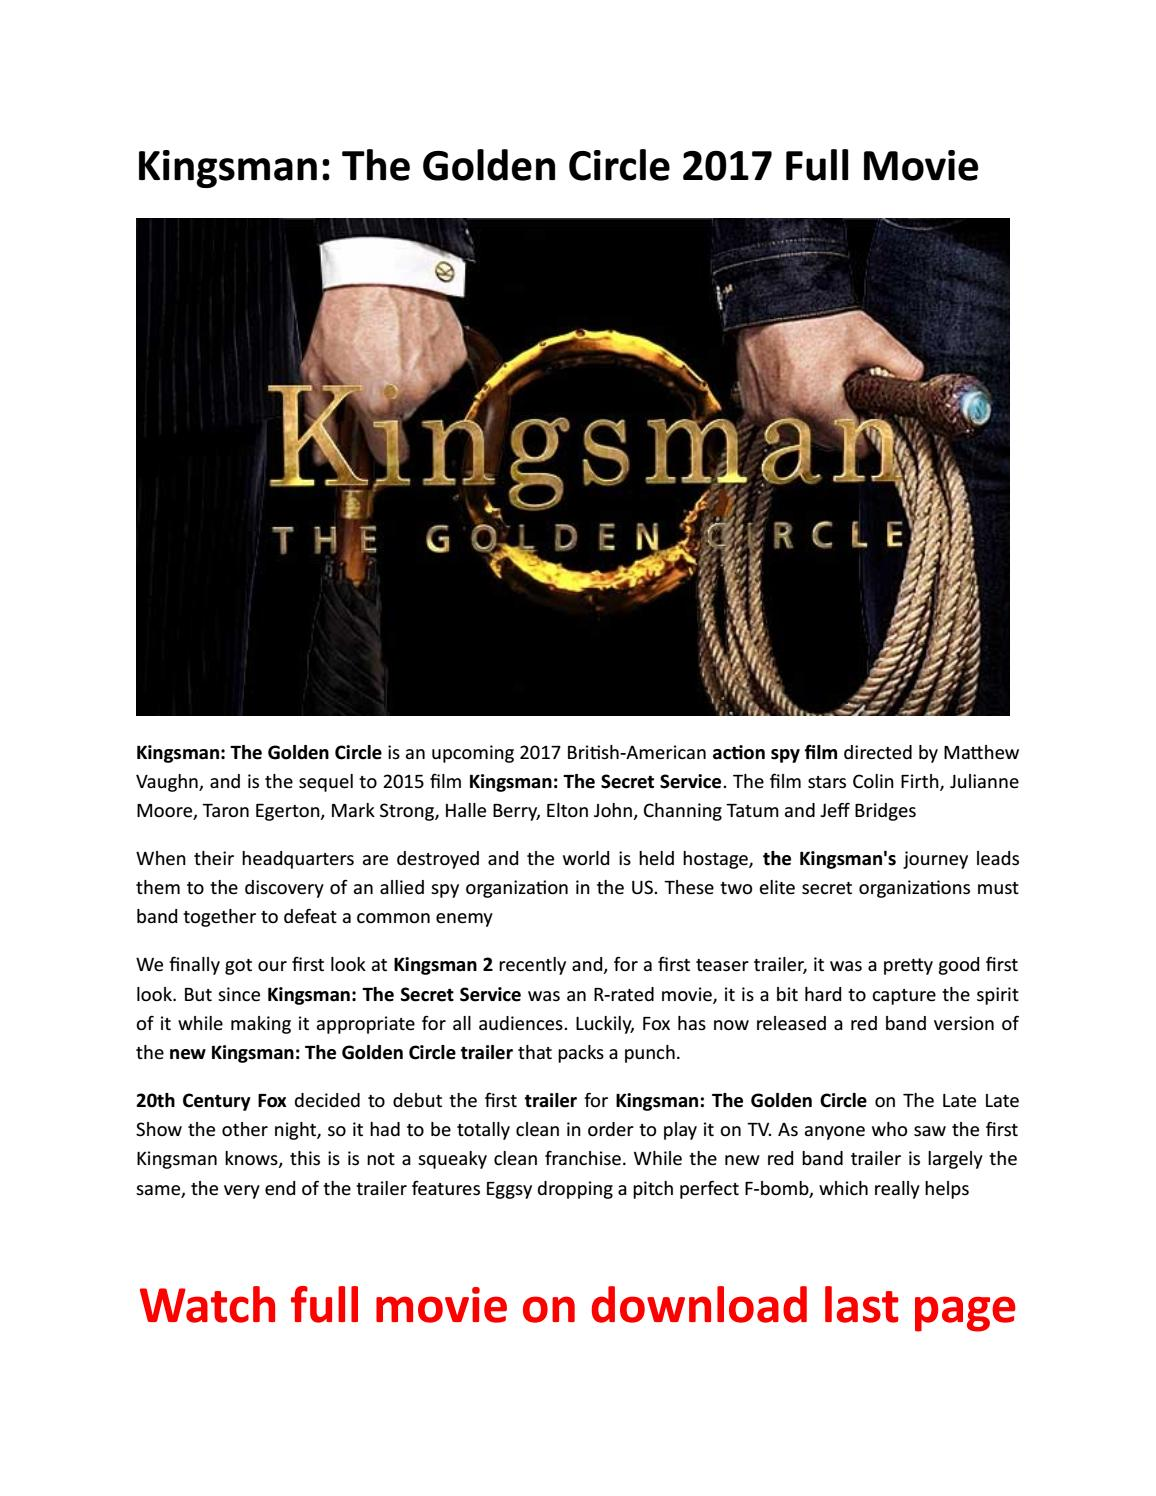 Kingsman The Golden Circle 2017 Movie Download By Majorie J Thomas Issuu